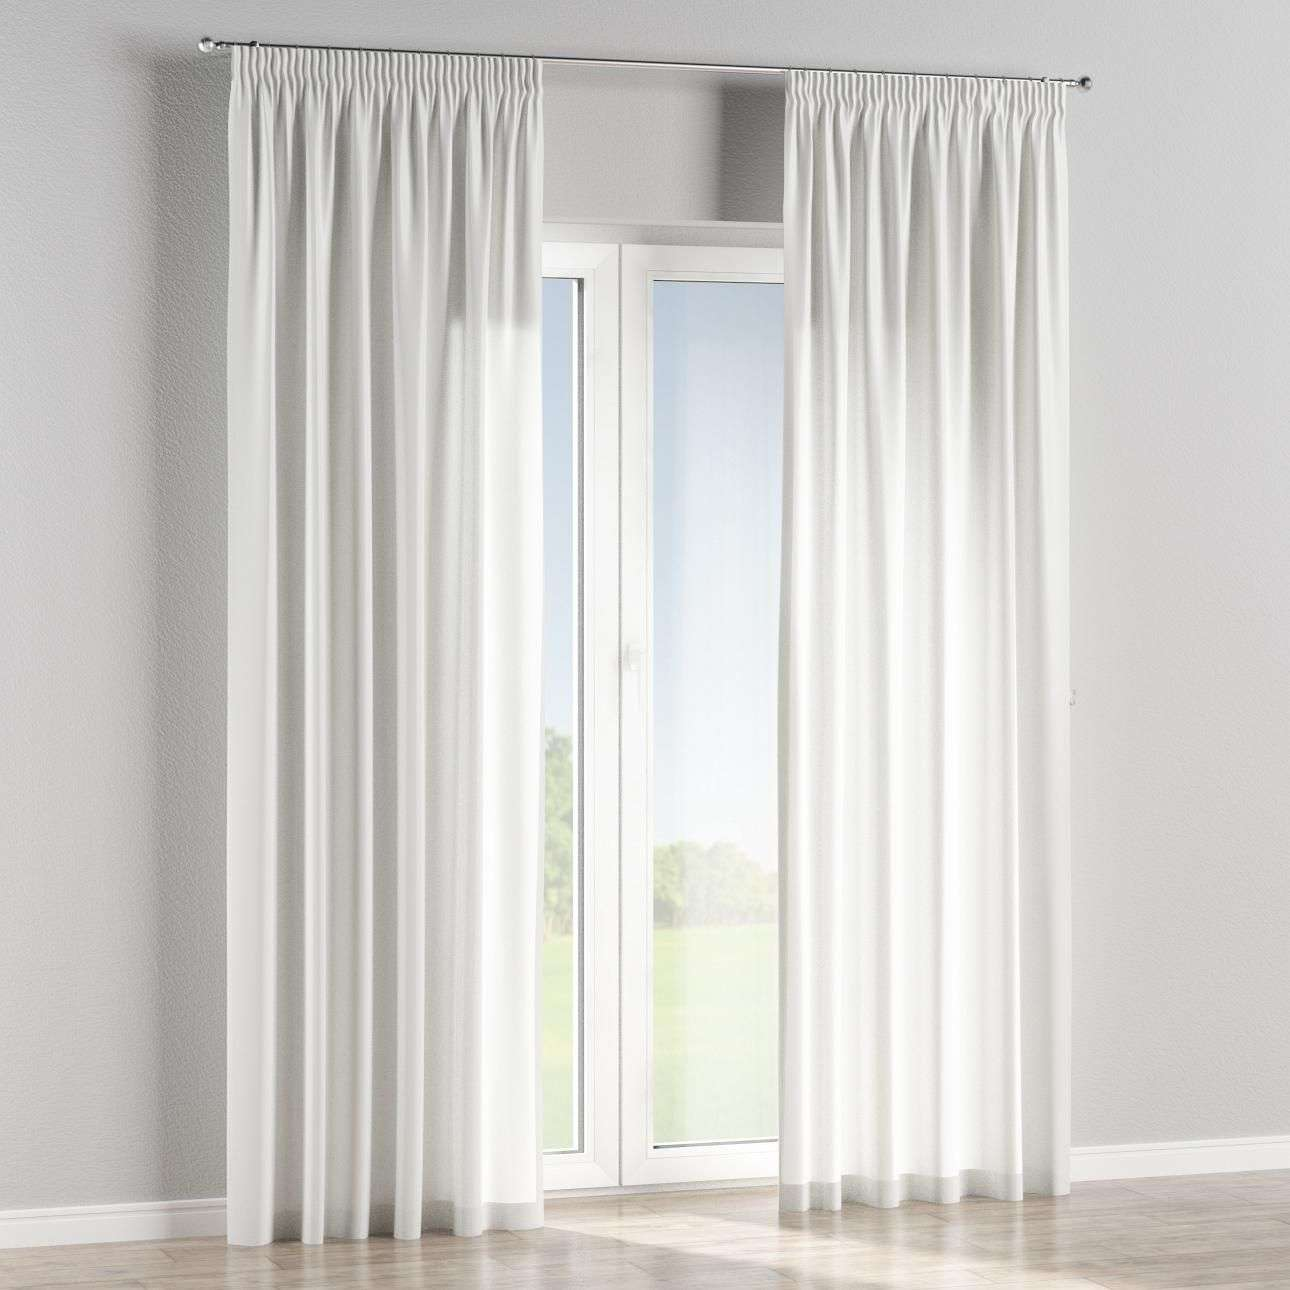 Pencil pleat curtains in collection Norge, fabric: 140-80